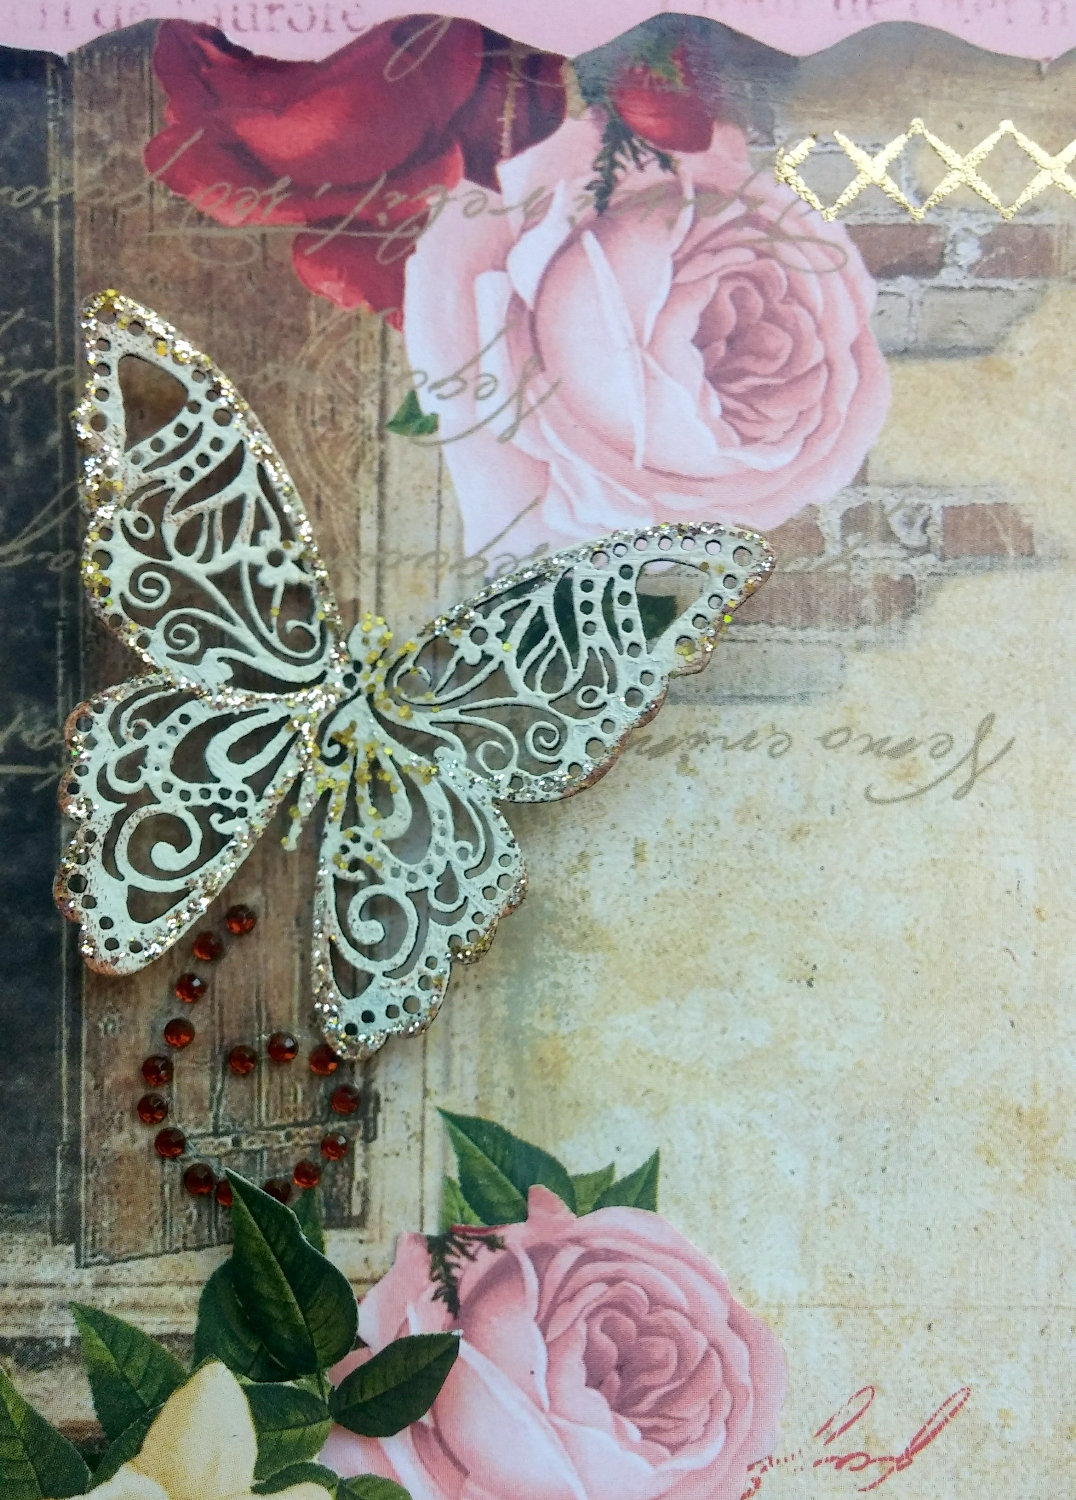 Juliet scrapbook ideas -  Bb Juliet Papers If You Haven T Seen All The Lovelies In Her Etsy Shop You Are In For A Treat You Can Find Her Shop By Clicking The Link Shop Name